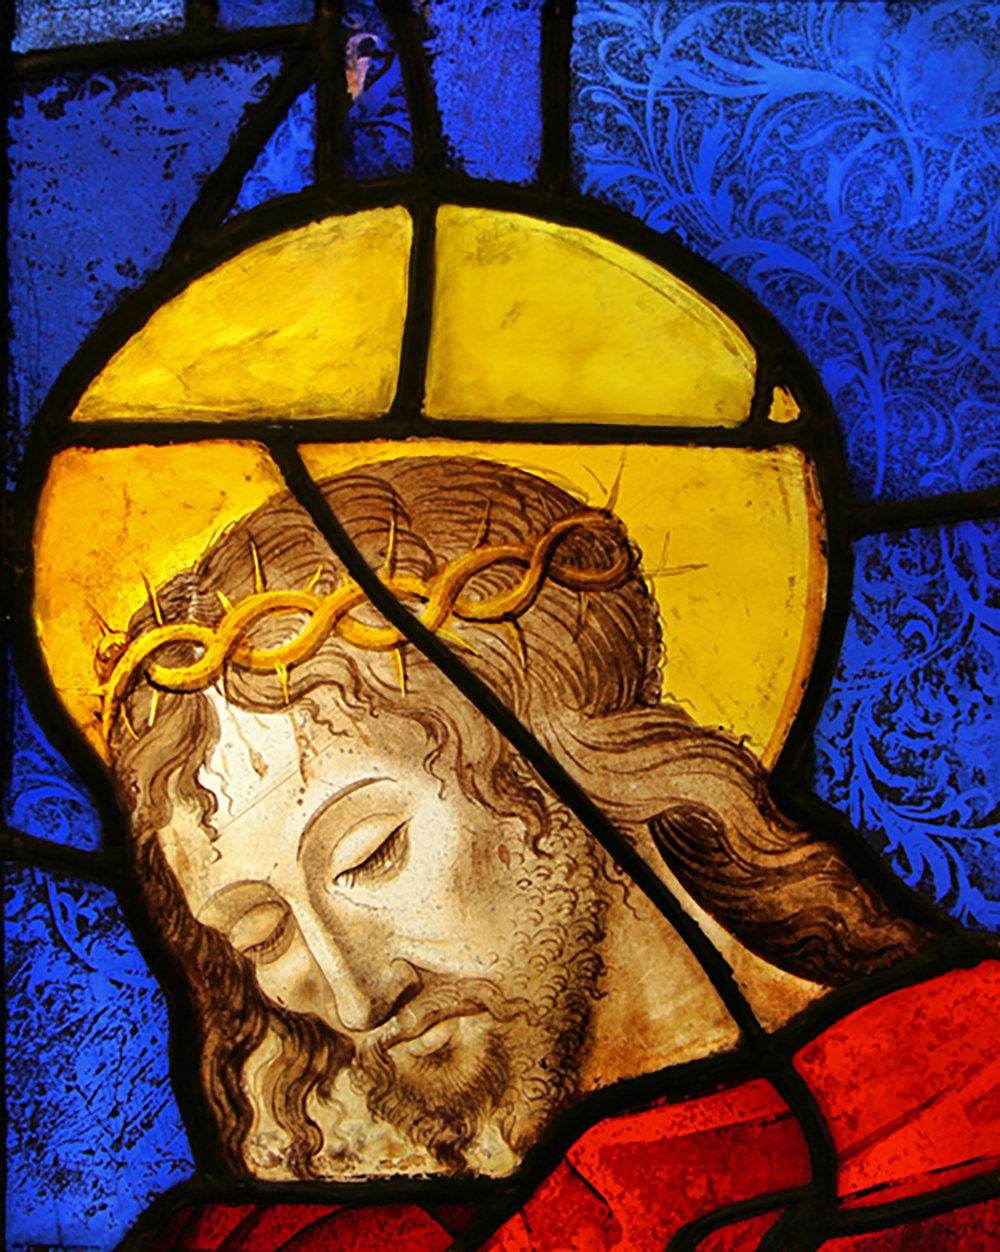 Figure 10: Sixteenth-century French stained-glass panel with the head of Christ. Glencairn Museum, 03.SG.9.